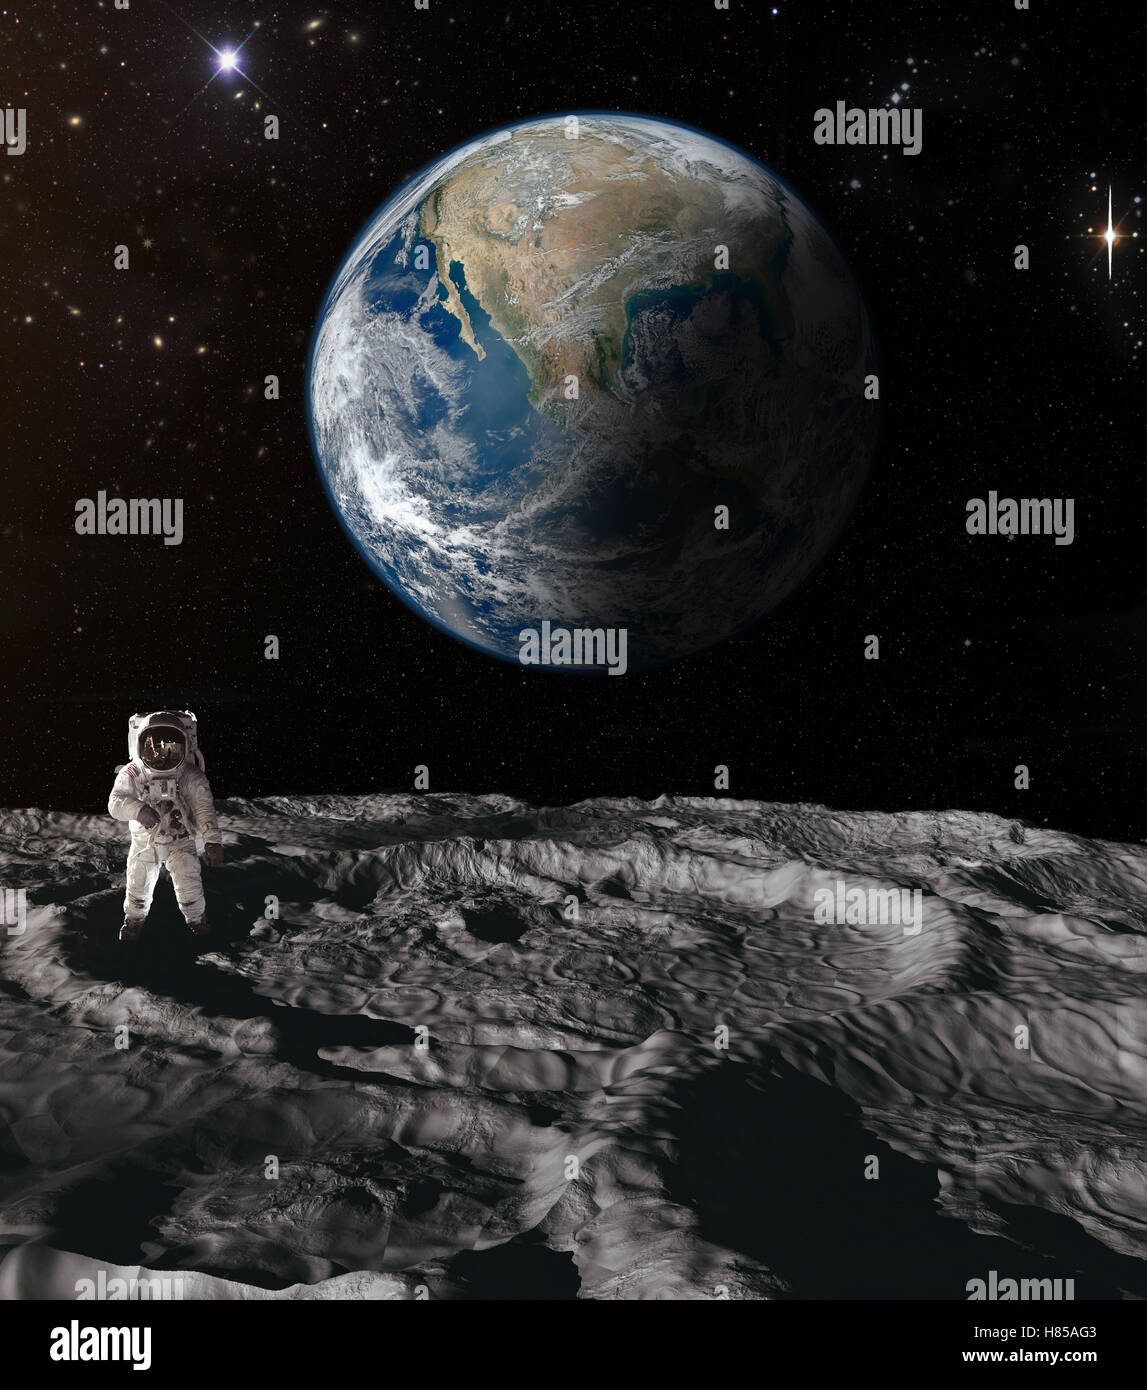 The astronaut on moon with earth in the background Stock ...